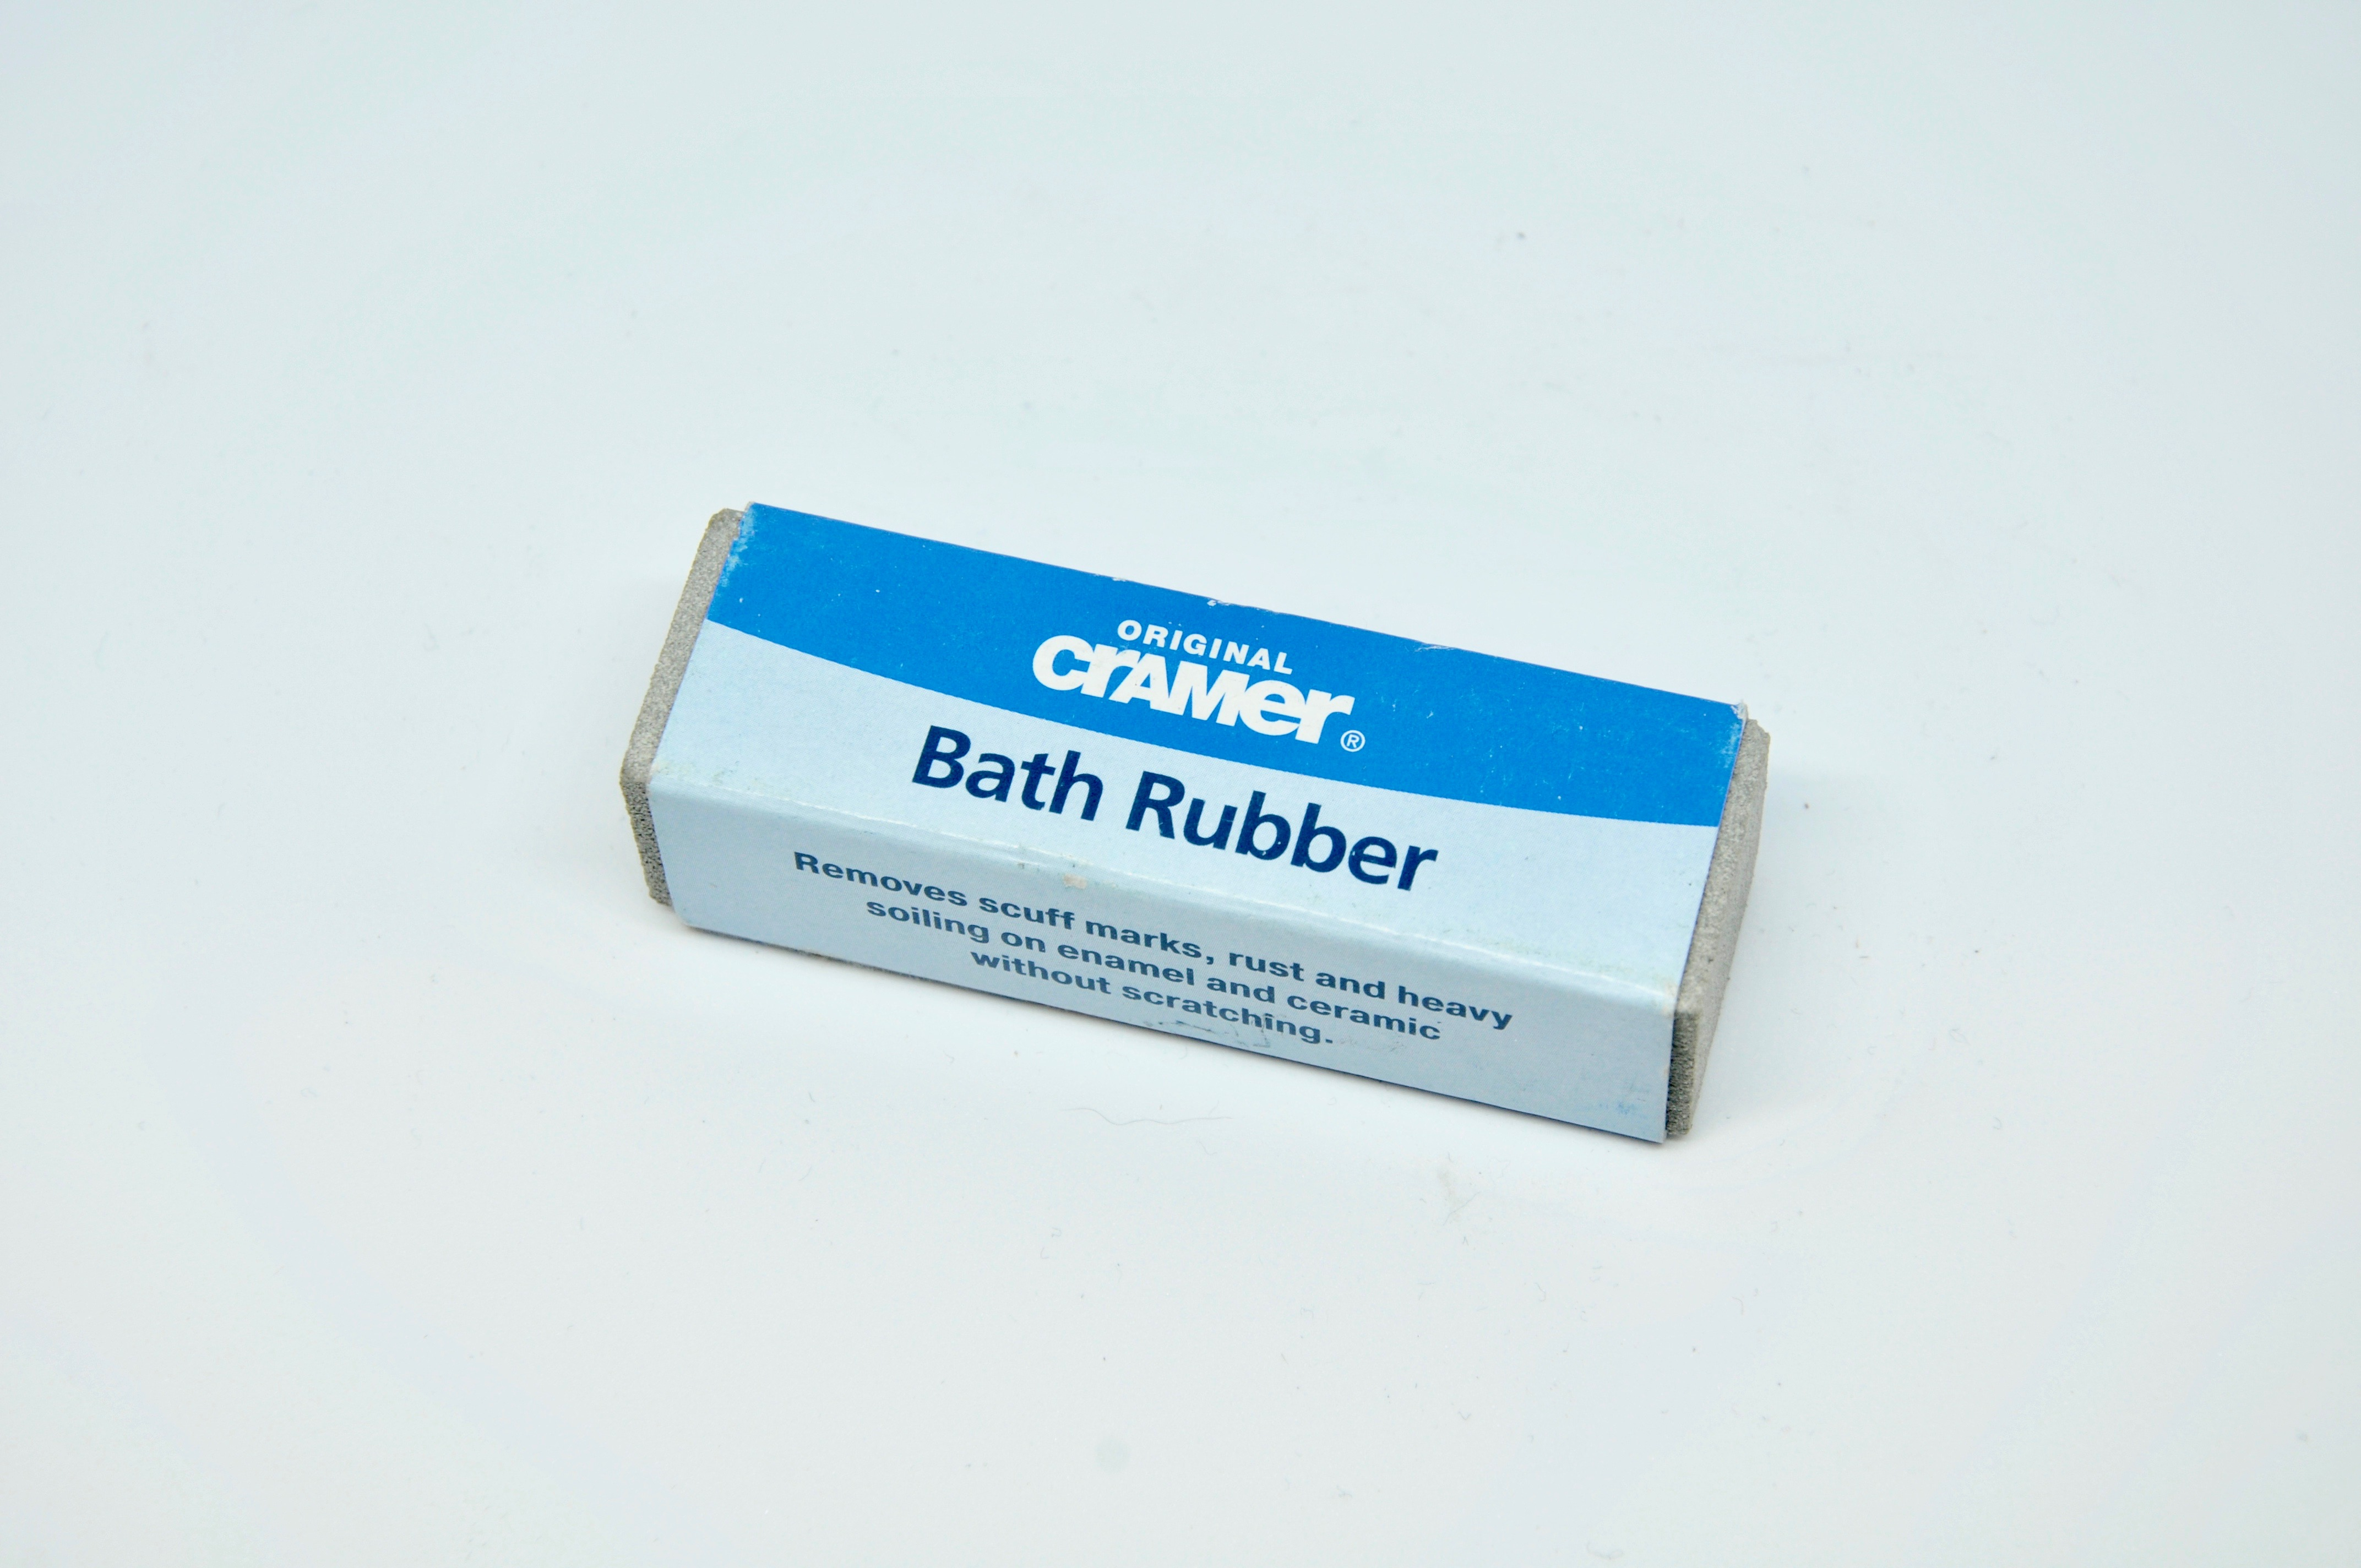 Bath Rubber